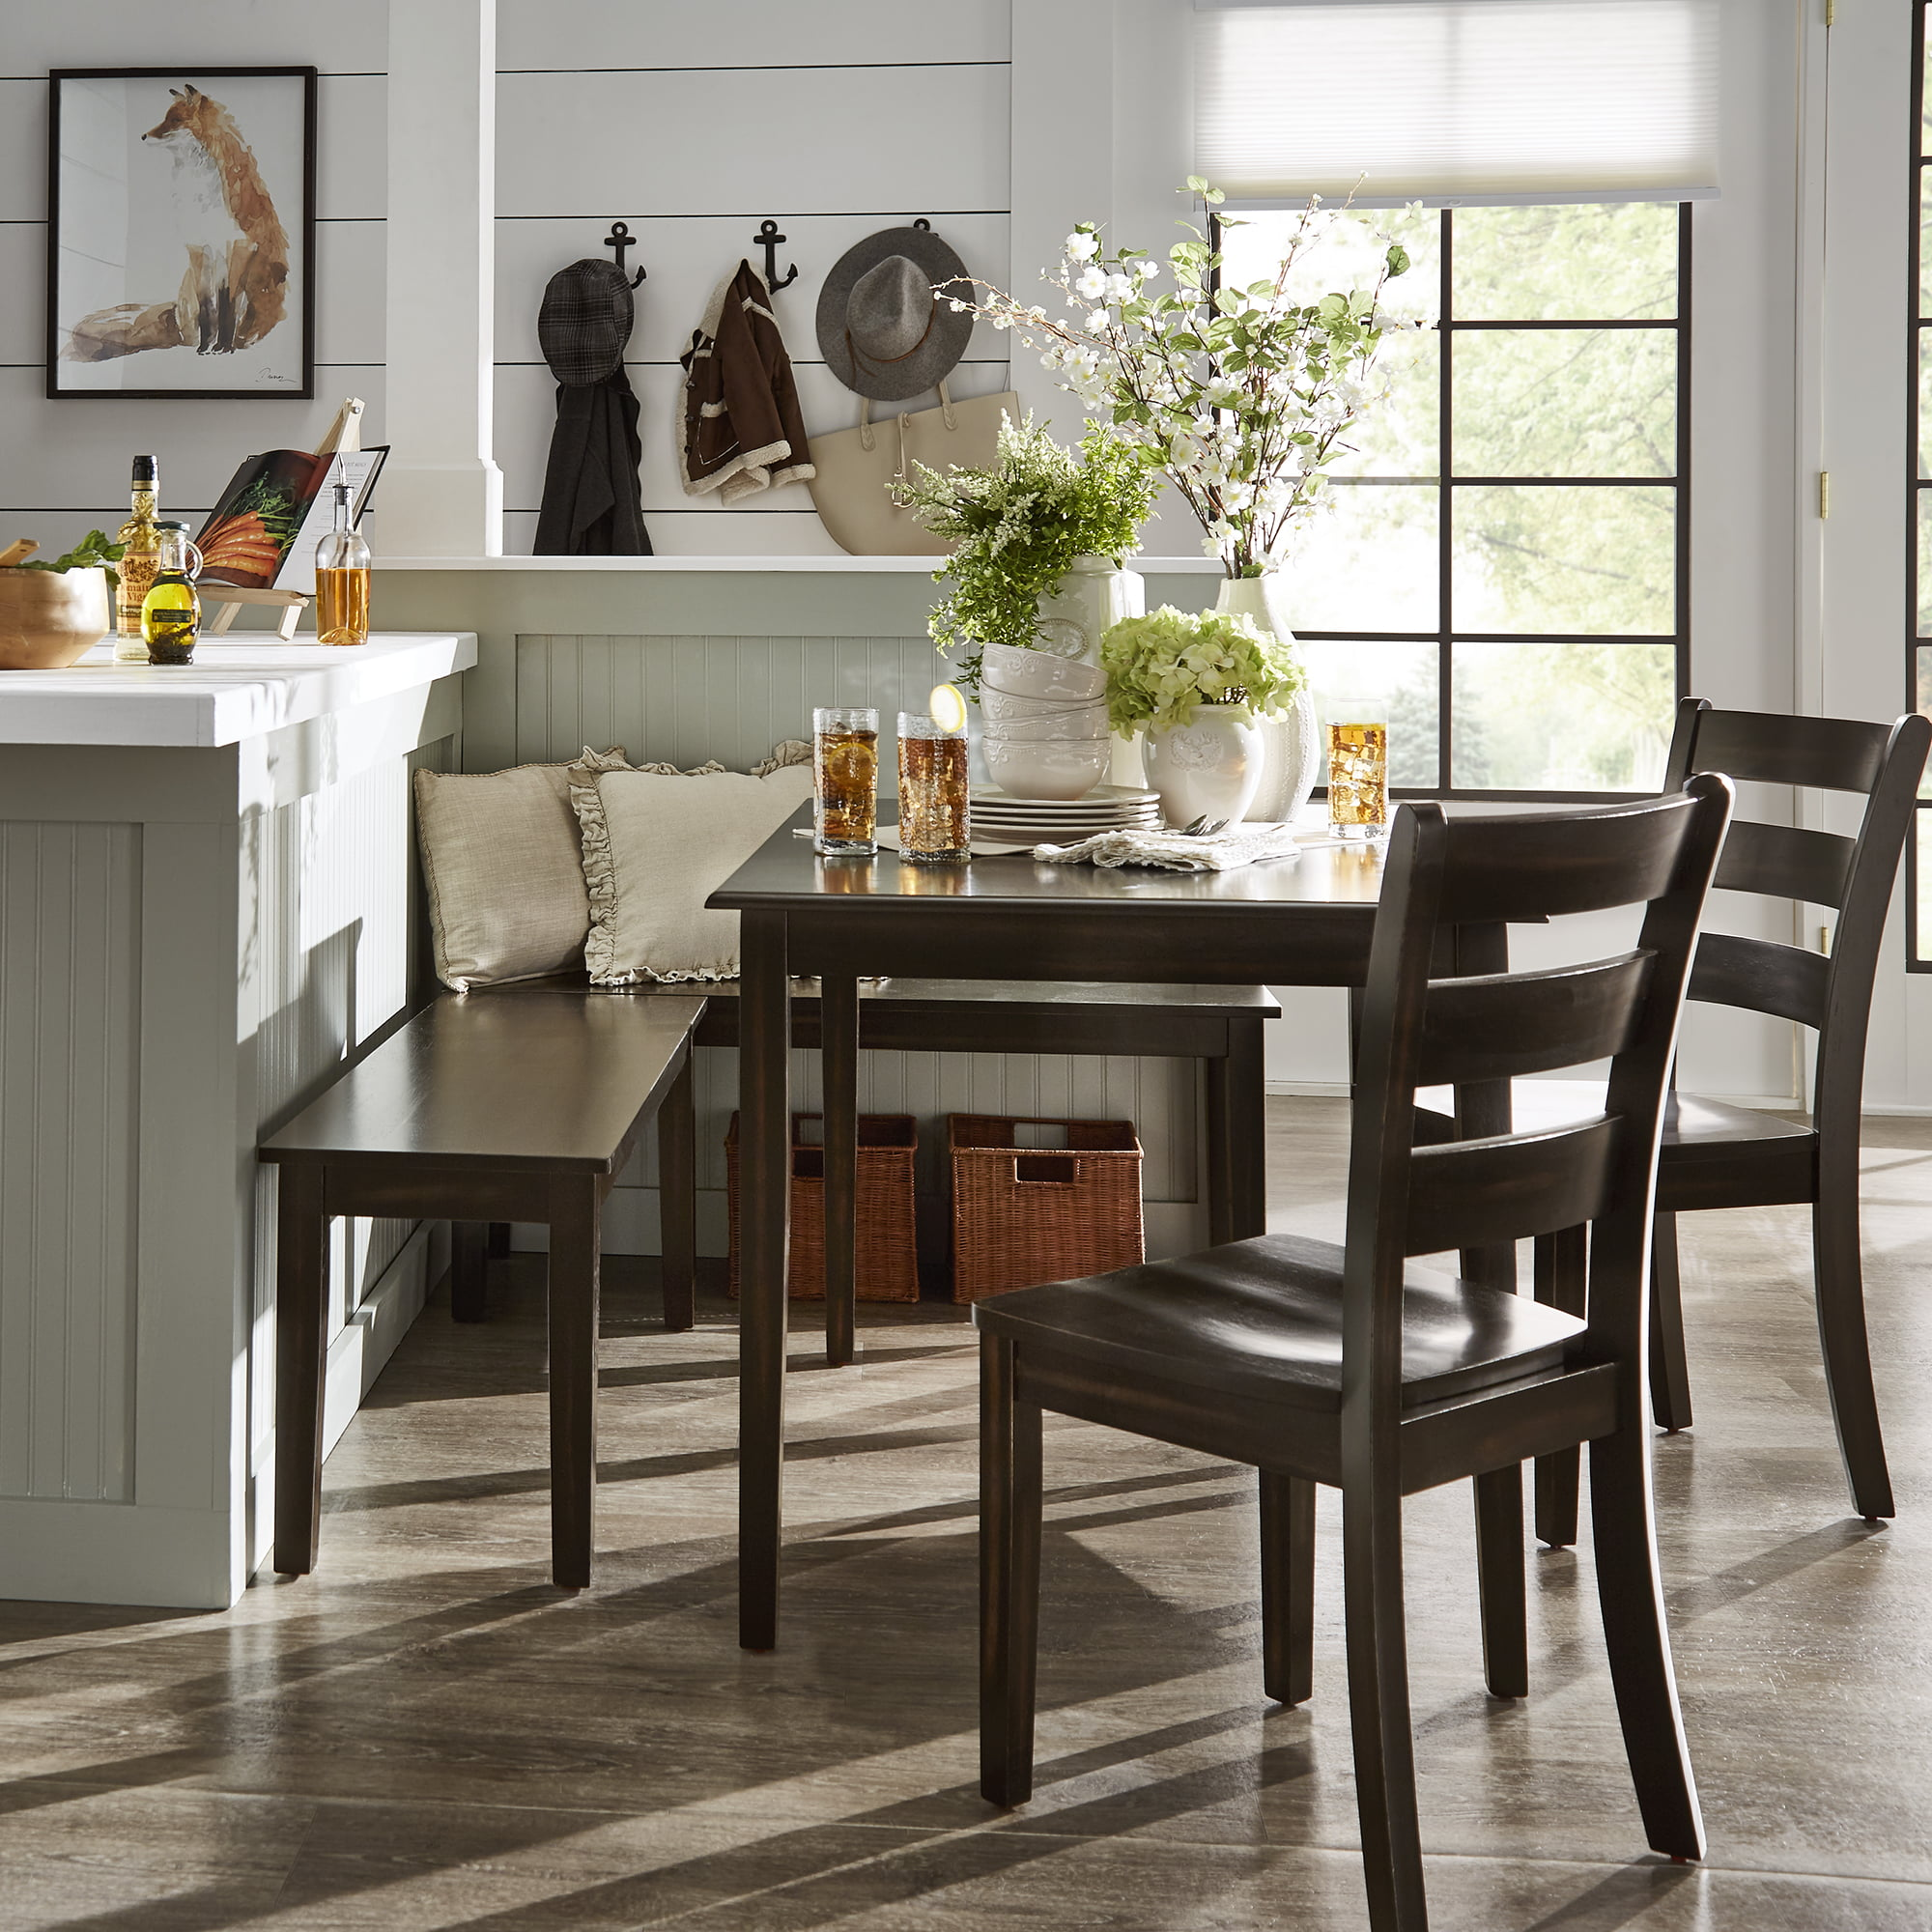 Kitchen Nook Table Sets: Weston Home Lexington 5-Piece Breakfast Nook Dining Set